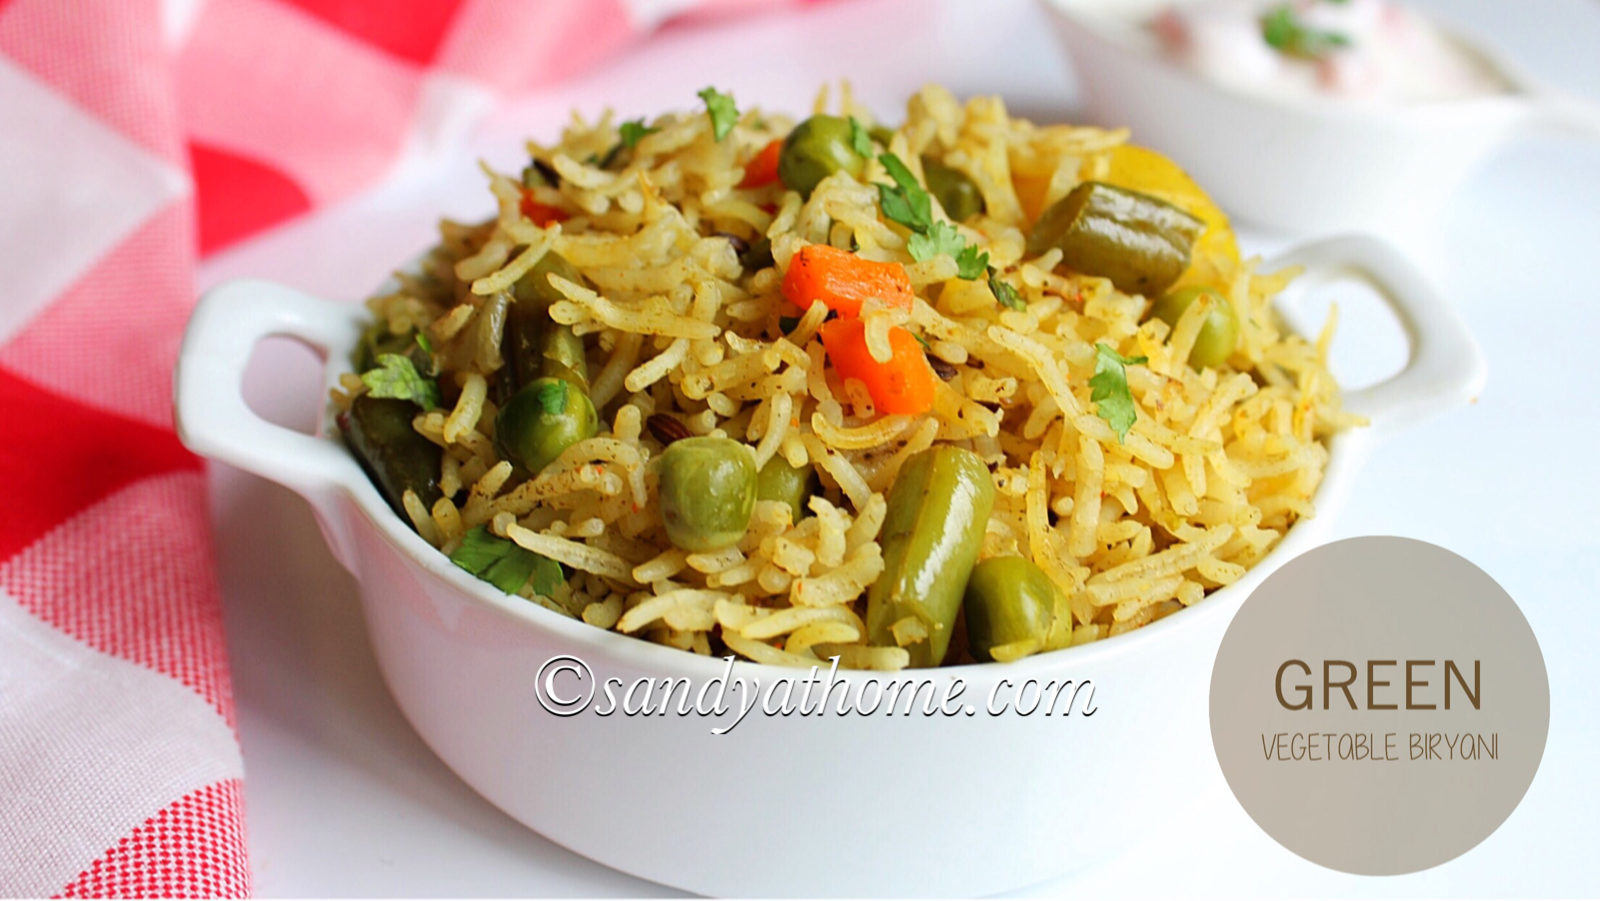 Green Vegetable Biryani Recipe Green Biryani Sandhya S Recipes